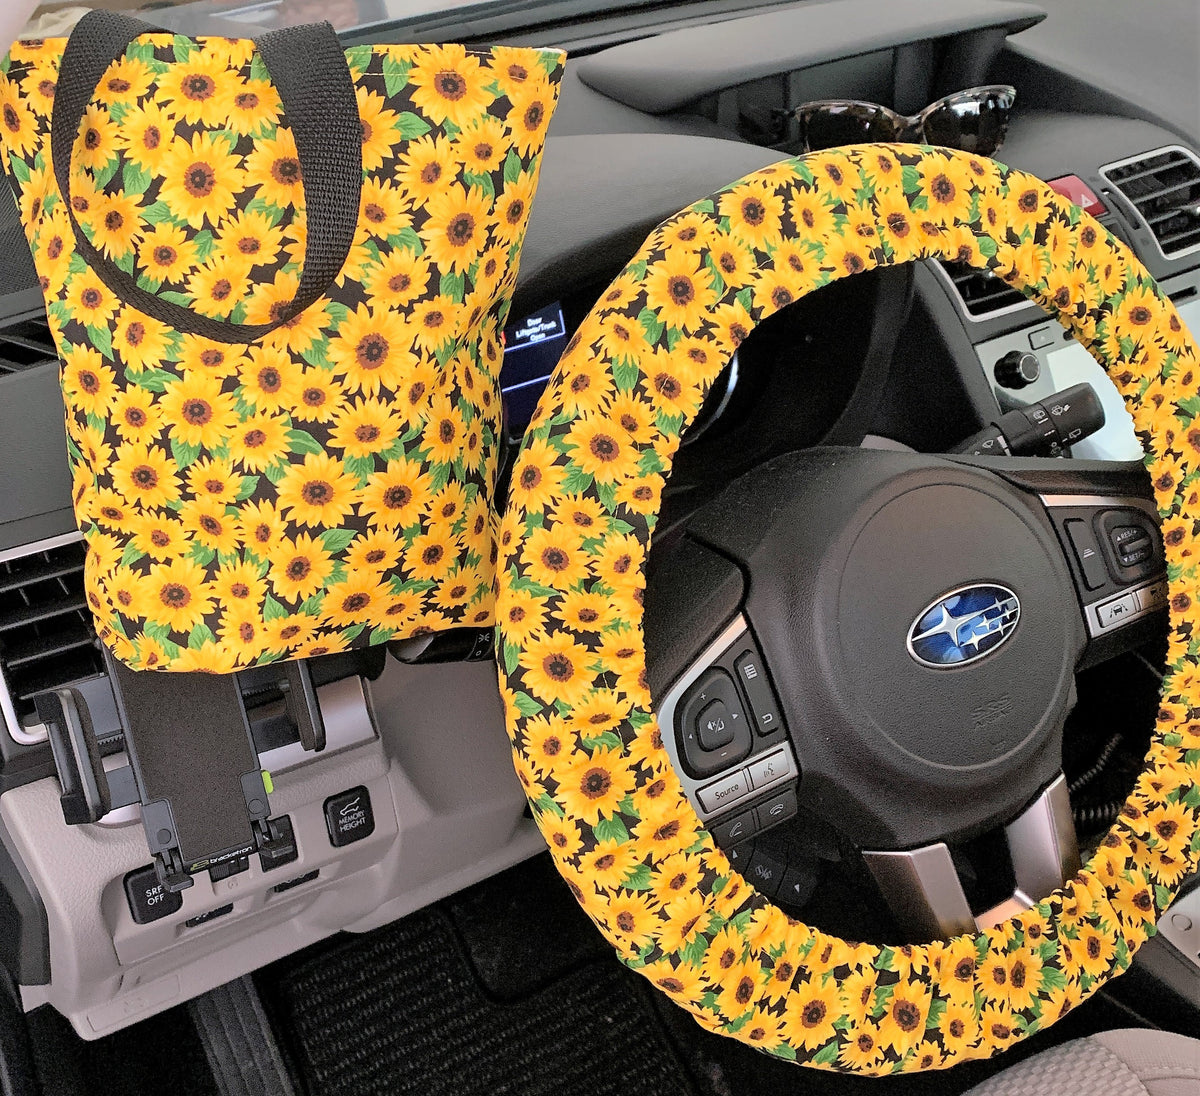 Sunflowers Mini Steering Wheel Cover - Floral Car Accessory - Steer Wheel Cover Women - Options